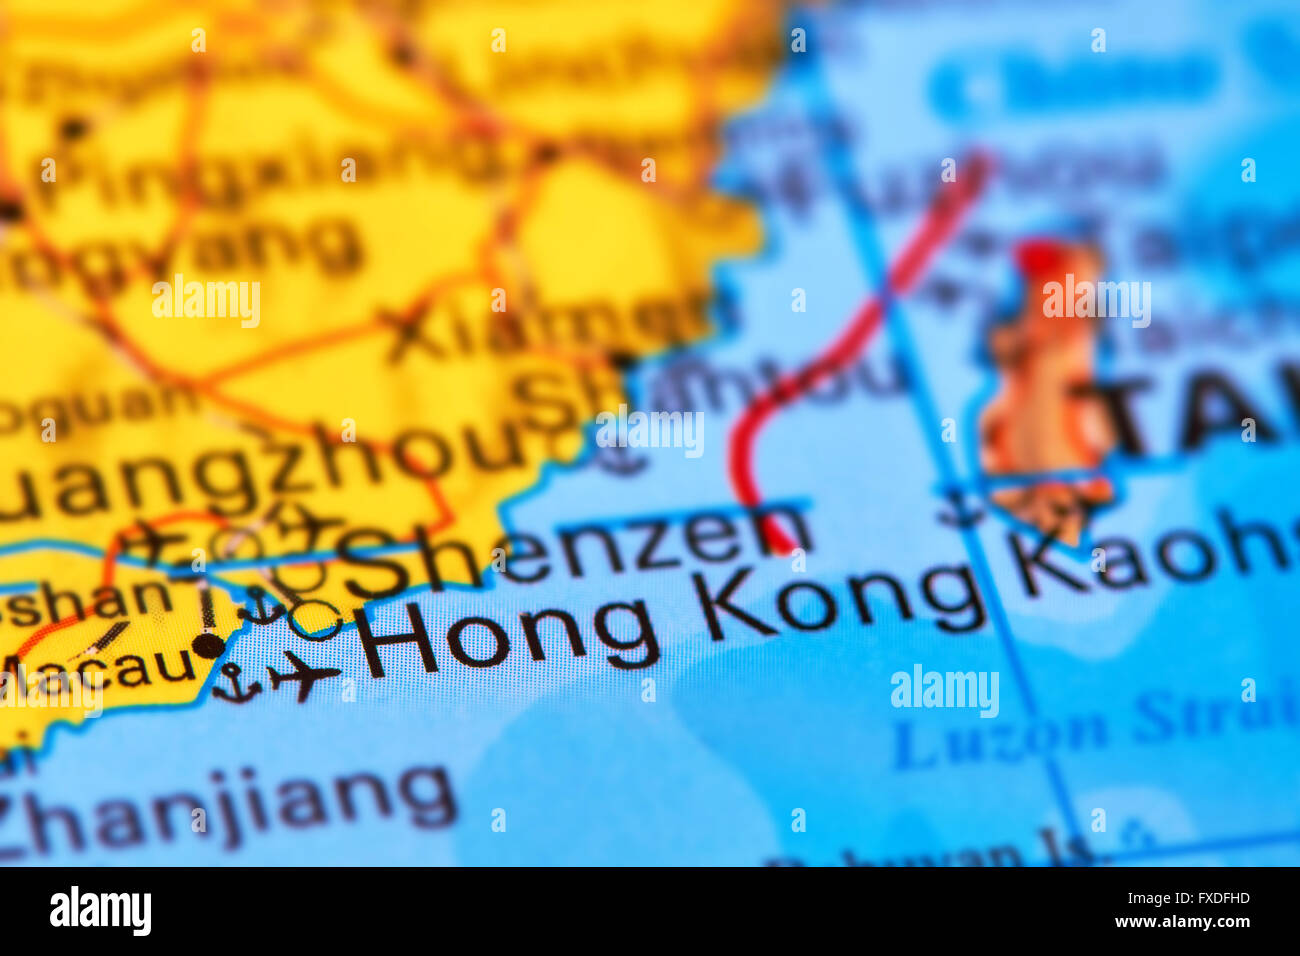 Hong Kong, City in China on the World Map Stock Photo: 102330521 - Alamy